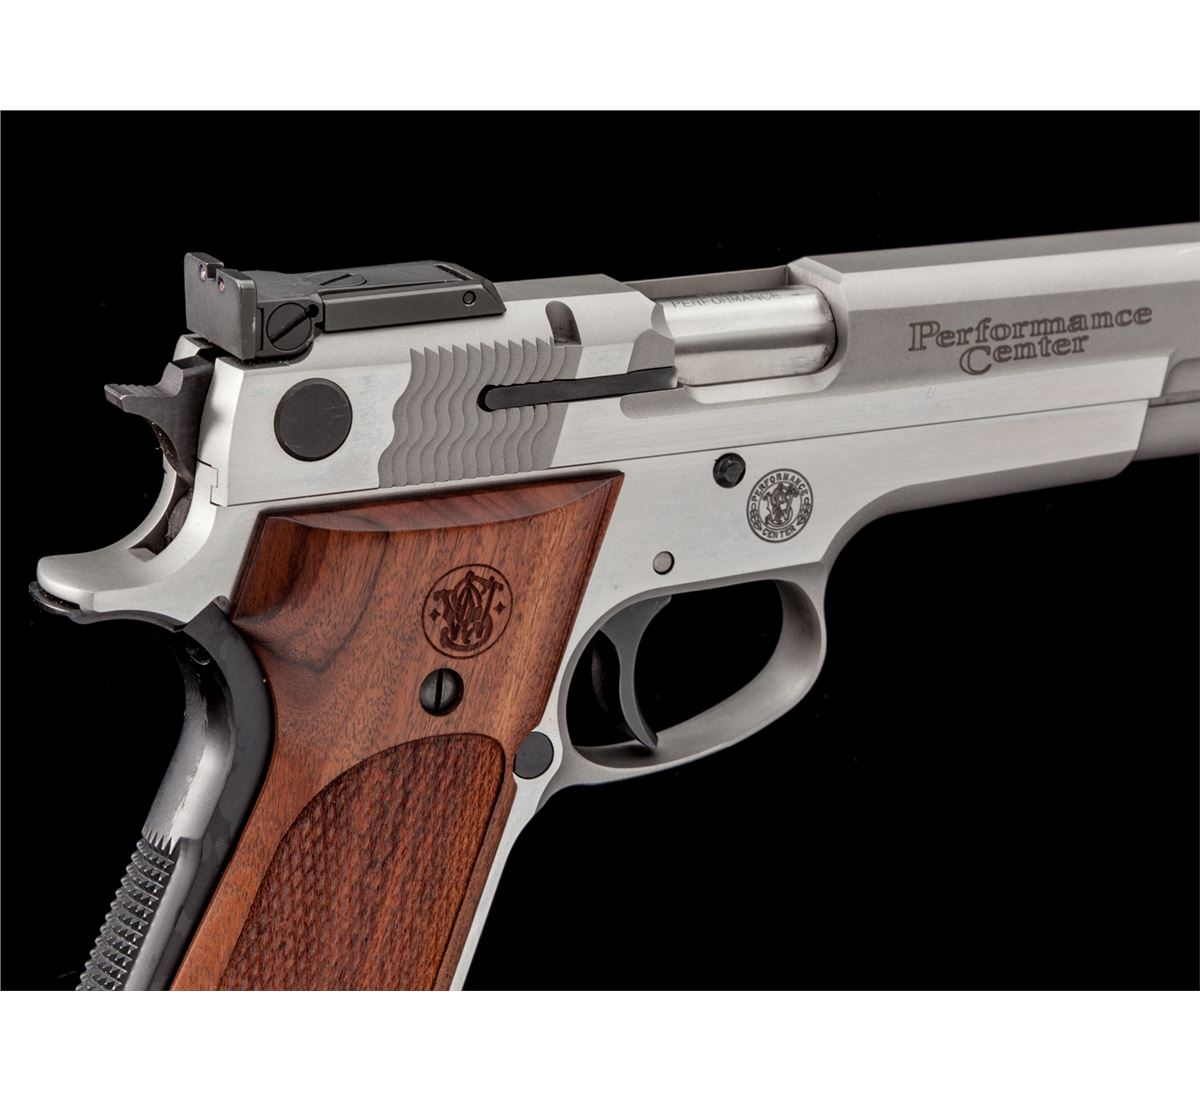 ... Image 4 : S&W Performance Center Model 952-2 Target Pistol ...